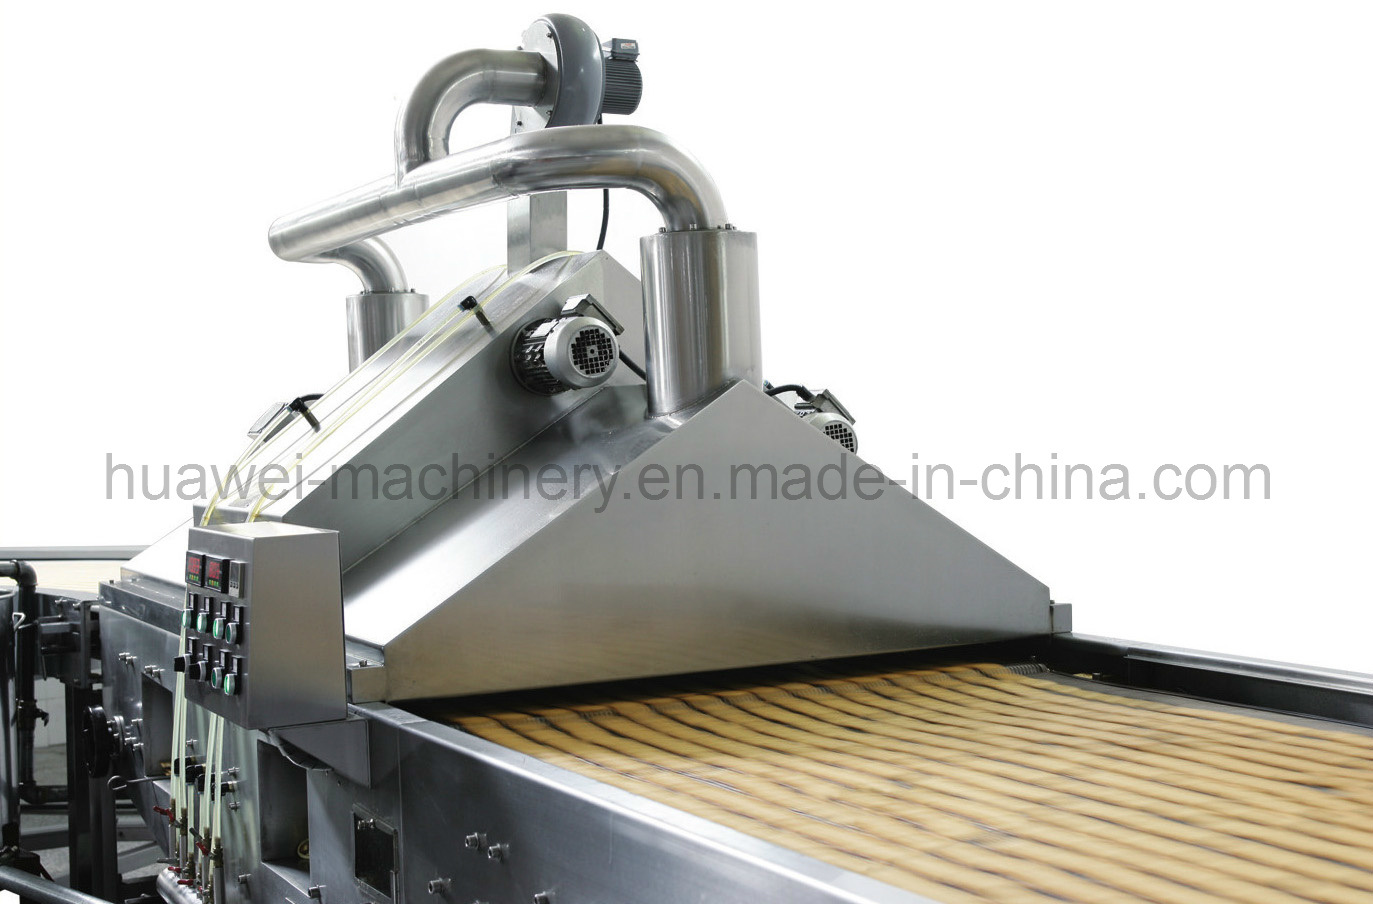 Oil Sprayer of Biscuit Machine